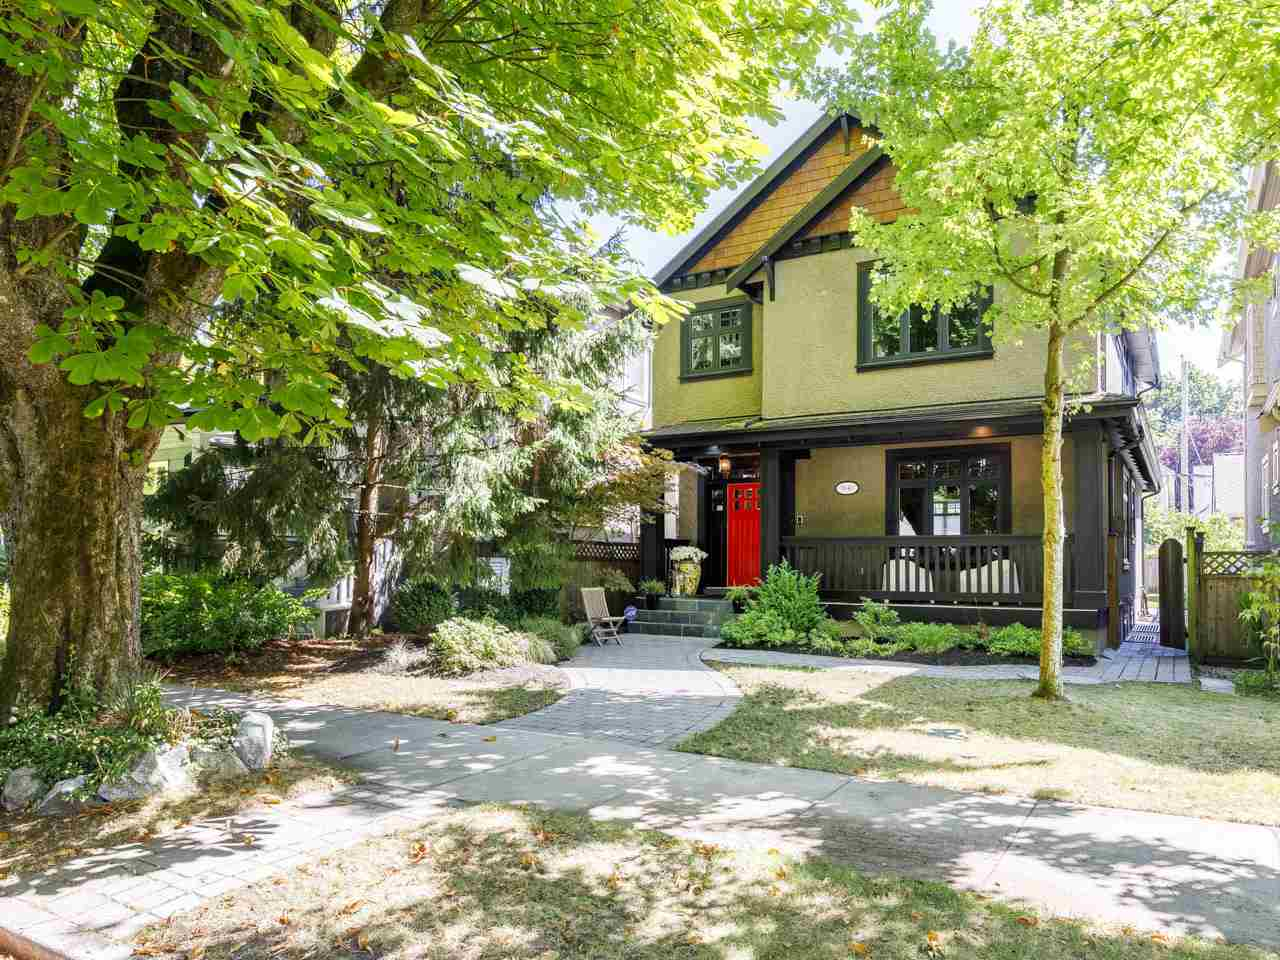 3040 W 12 AVENUE - Kitsilano House/Single Family for sale, 5 Bedrooms (R2482160) - #2